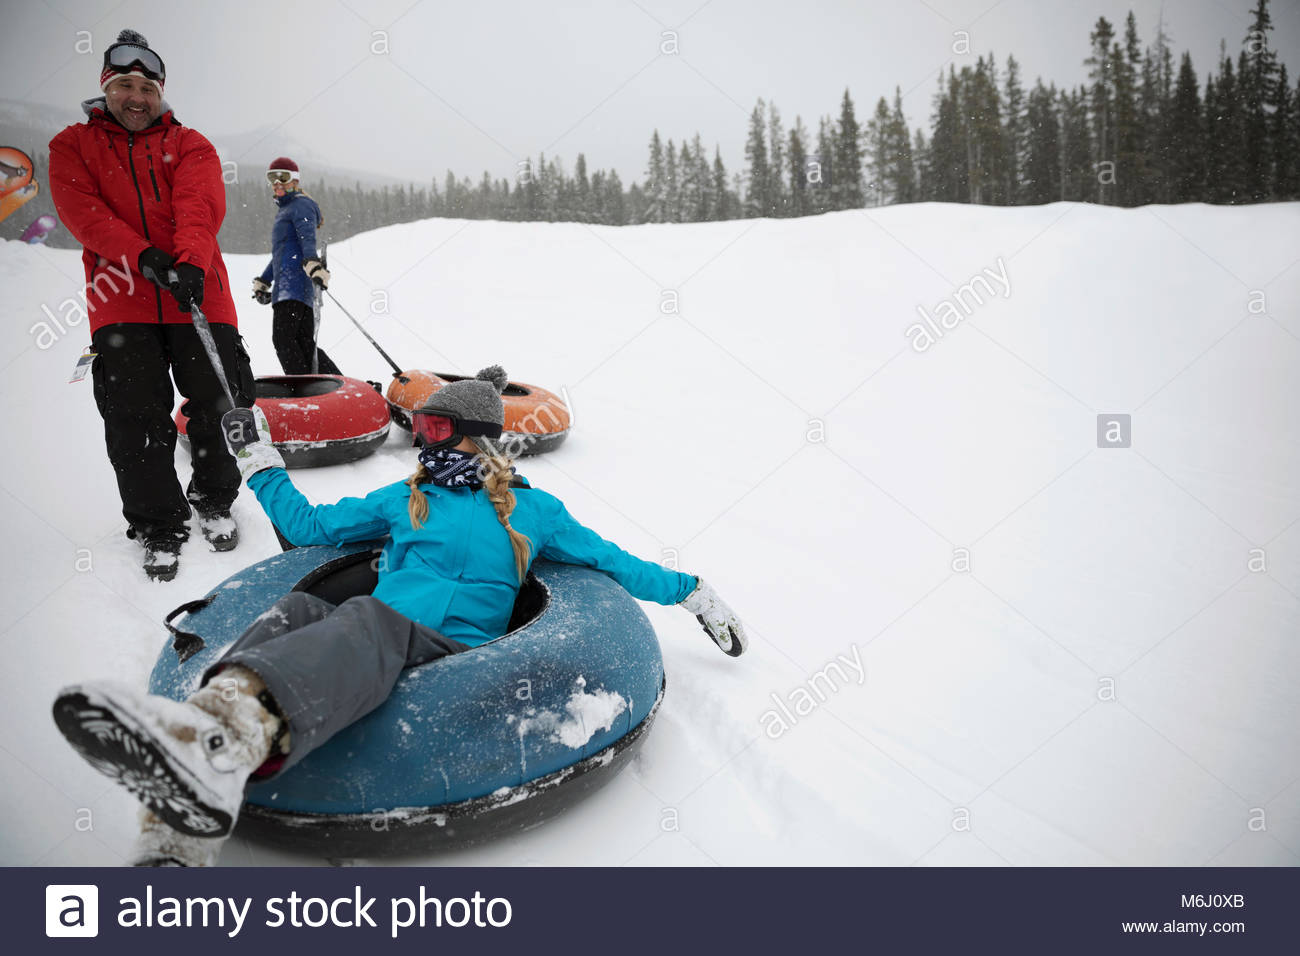 Playful family inner tubing in snow at tube park - Stock Image